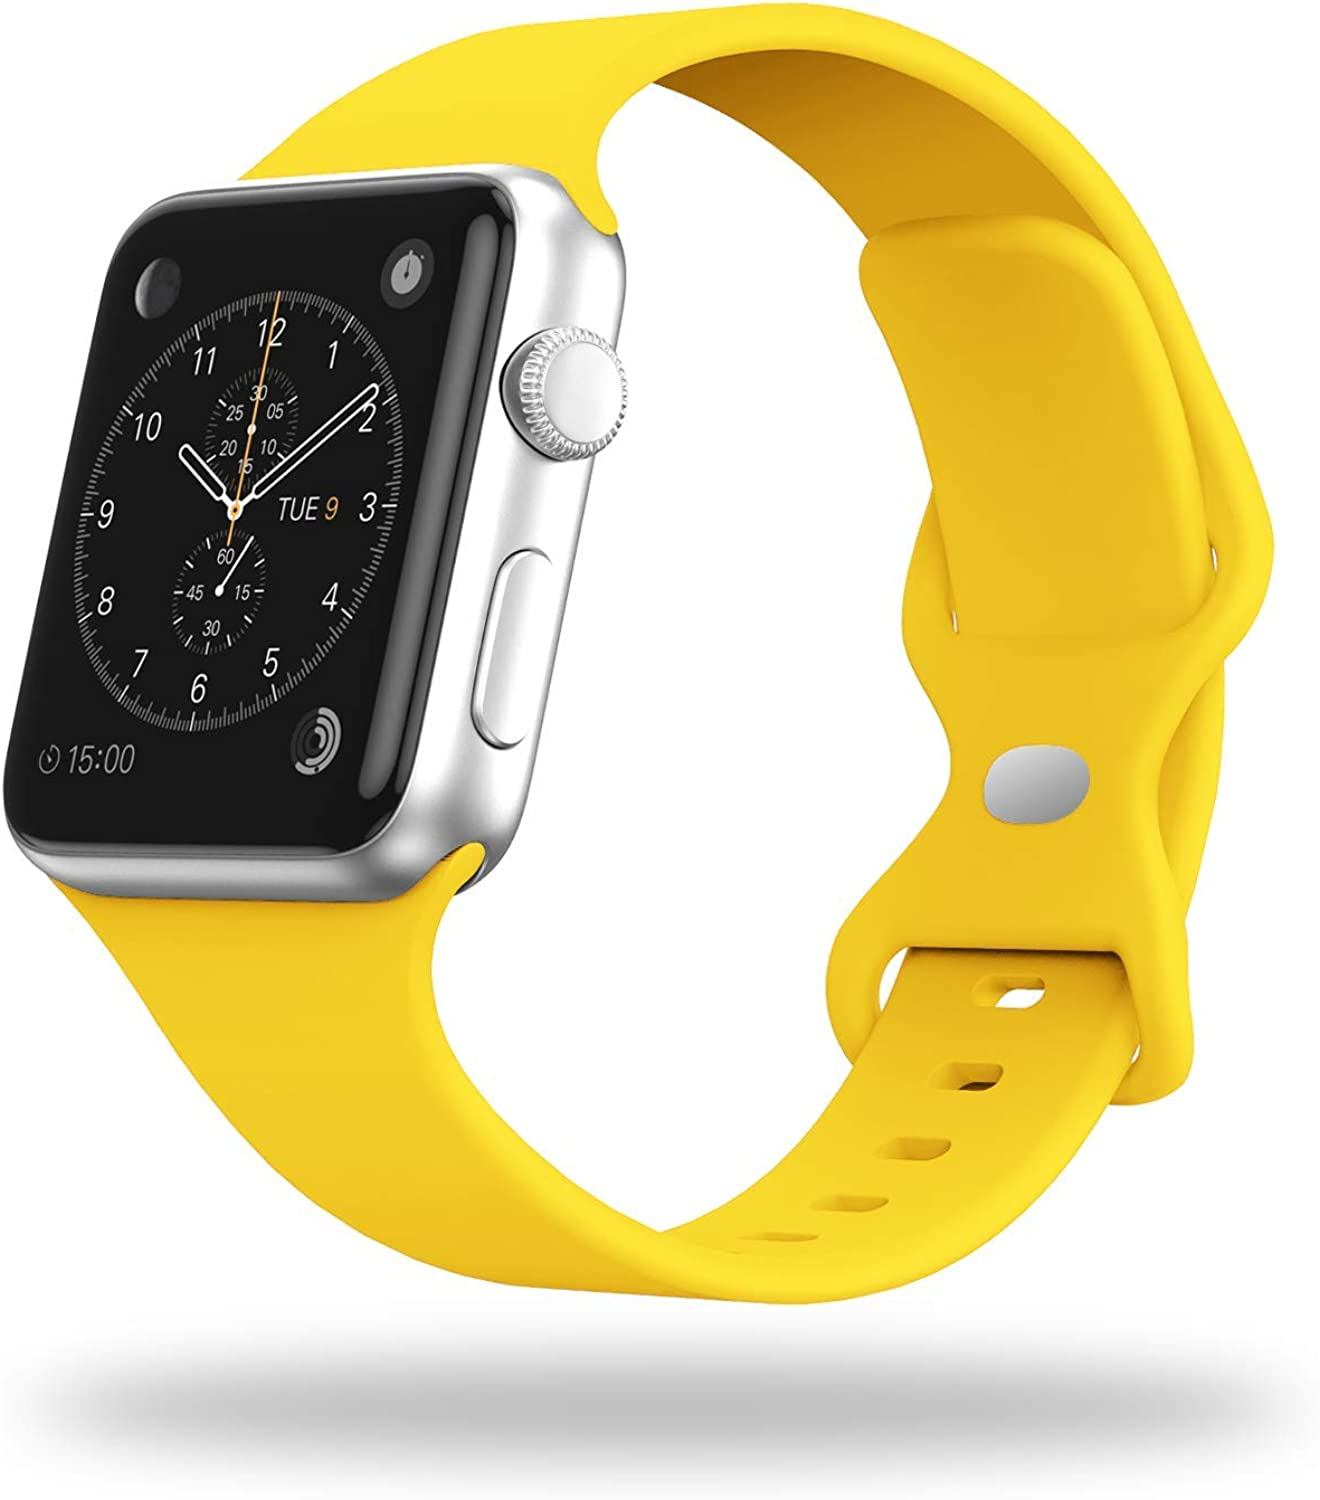 STG Smart Watch Band Compatible with Apple Watch Band 38mm 40mm 42mm 44mm, Soft Silicone Replacement Sport Strap Compatible for iWatch SE Series 6/5/4/3/2/1